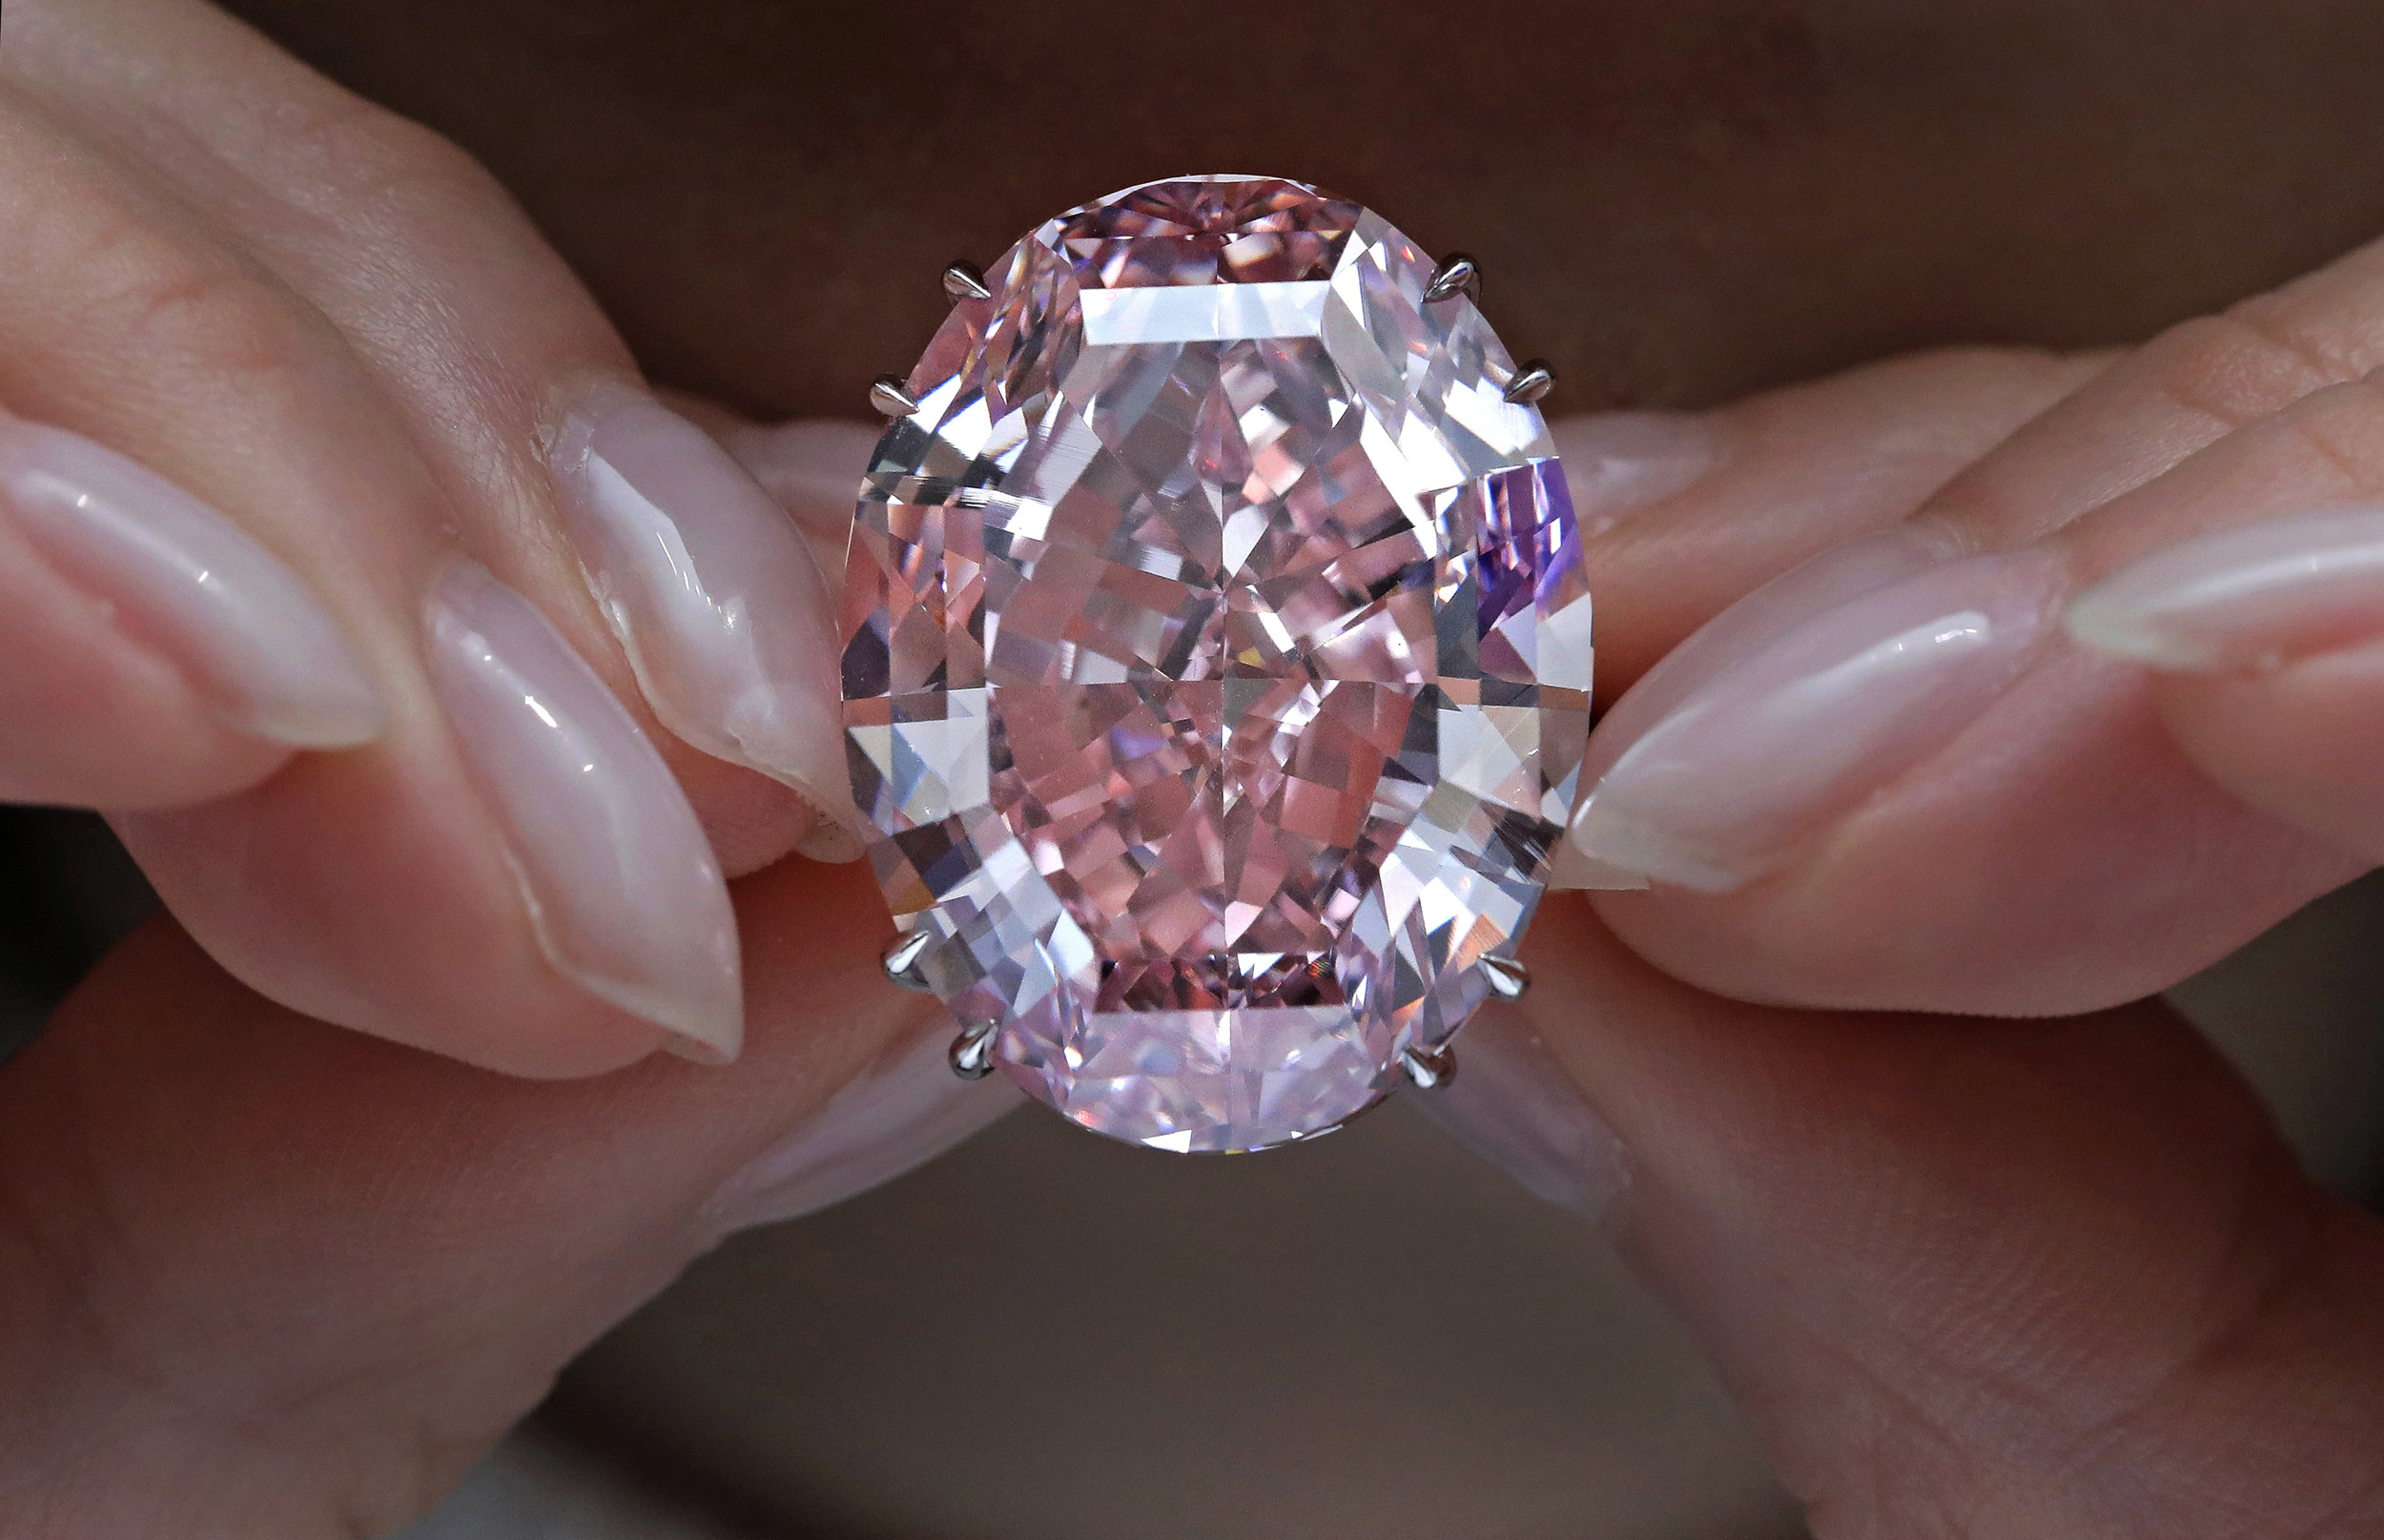 million the was gems graff it pin by purchased immediately more carat laurence and jewel after purchasing in for renamed than pink diamond oppenheimer